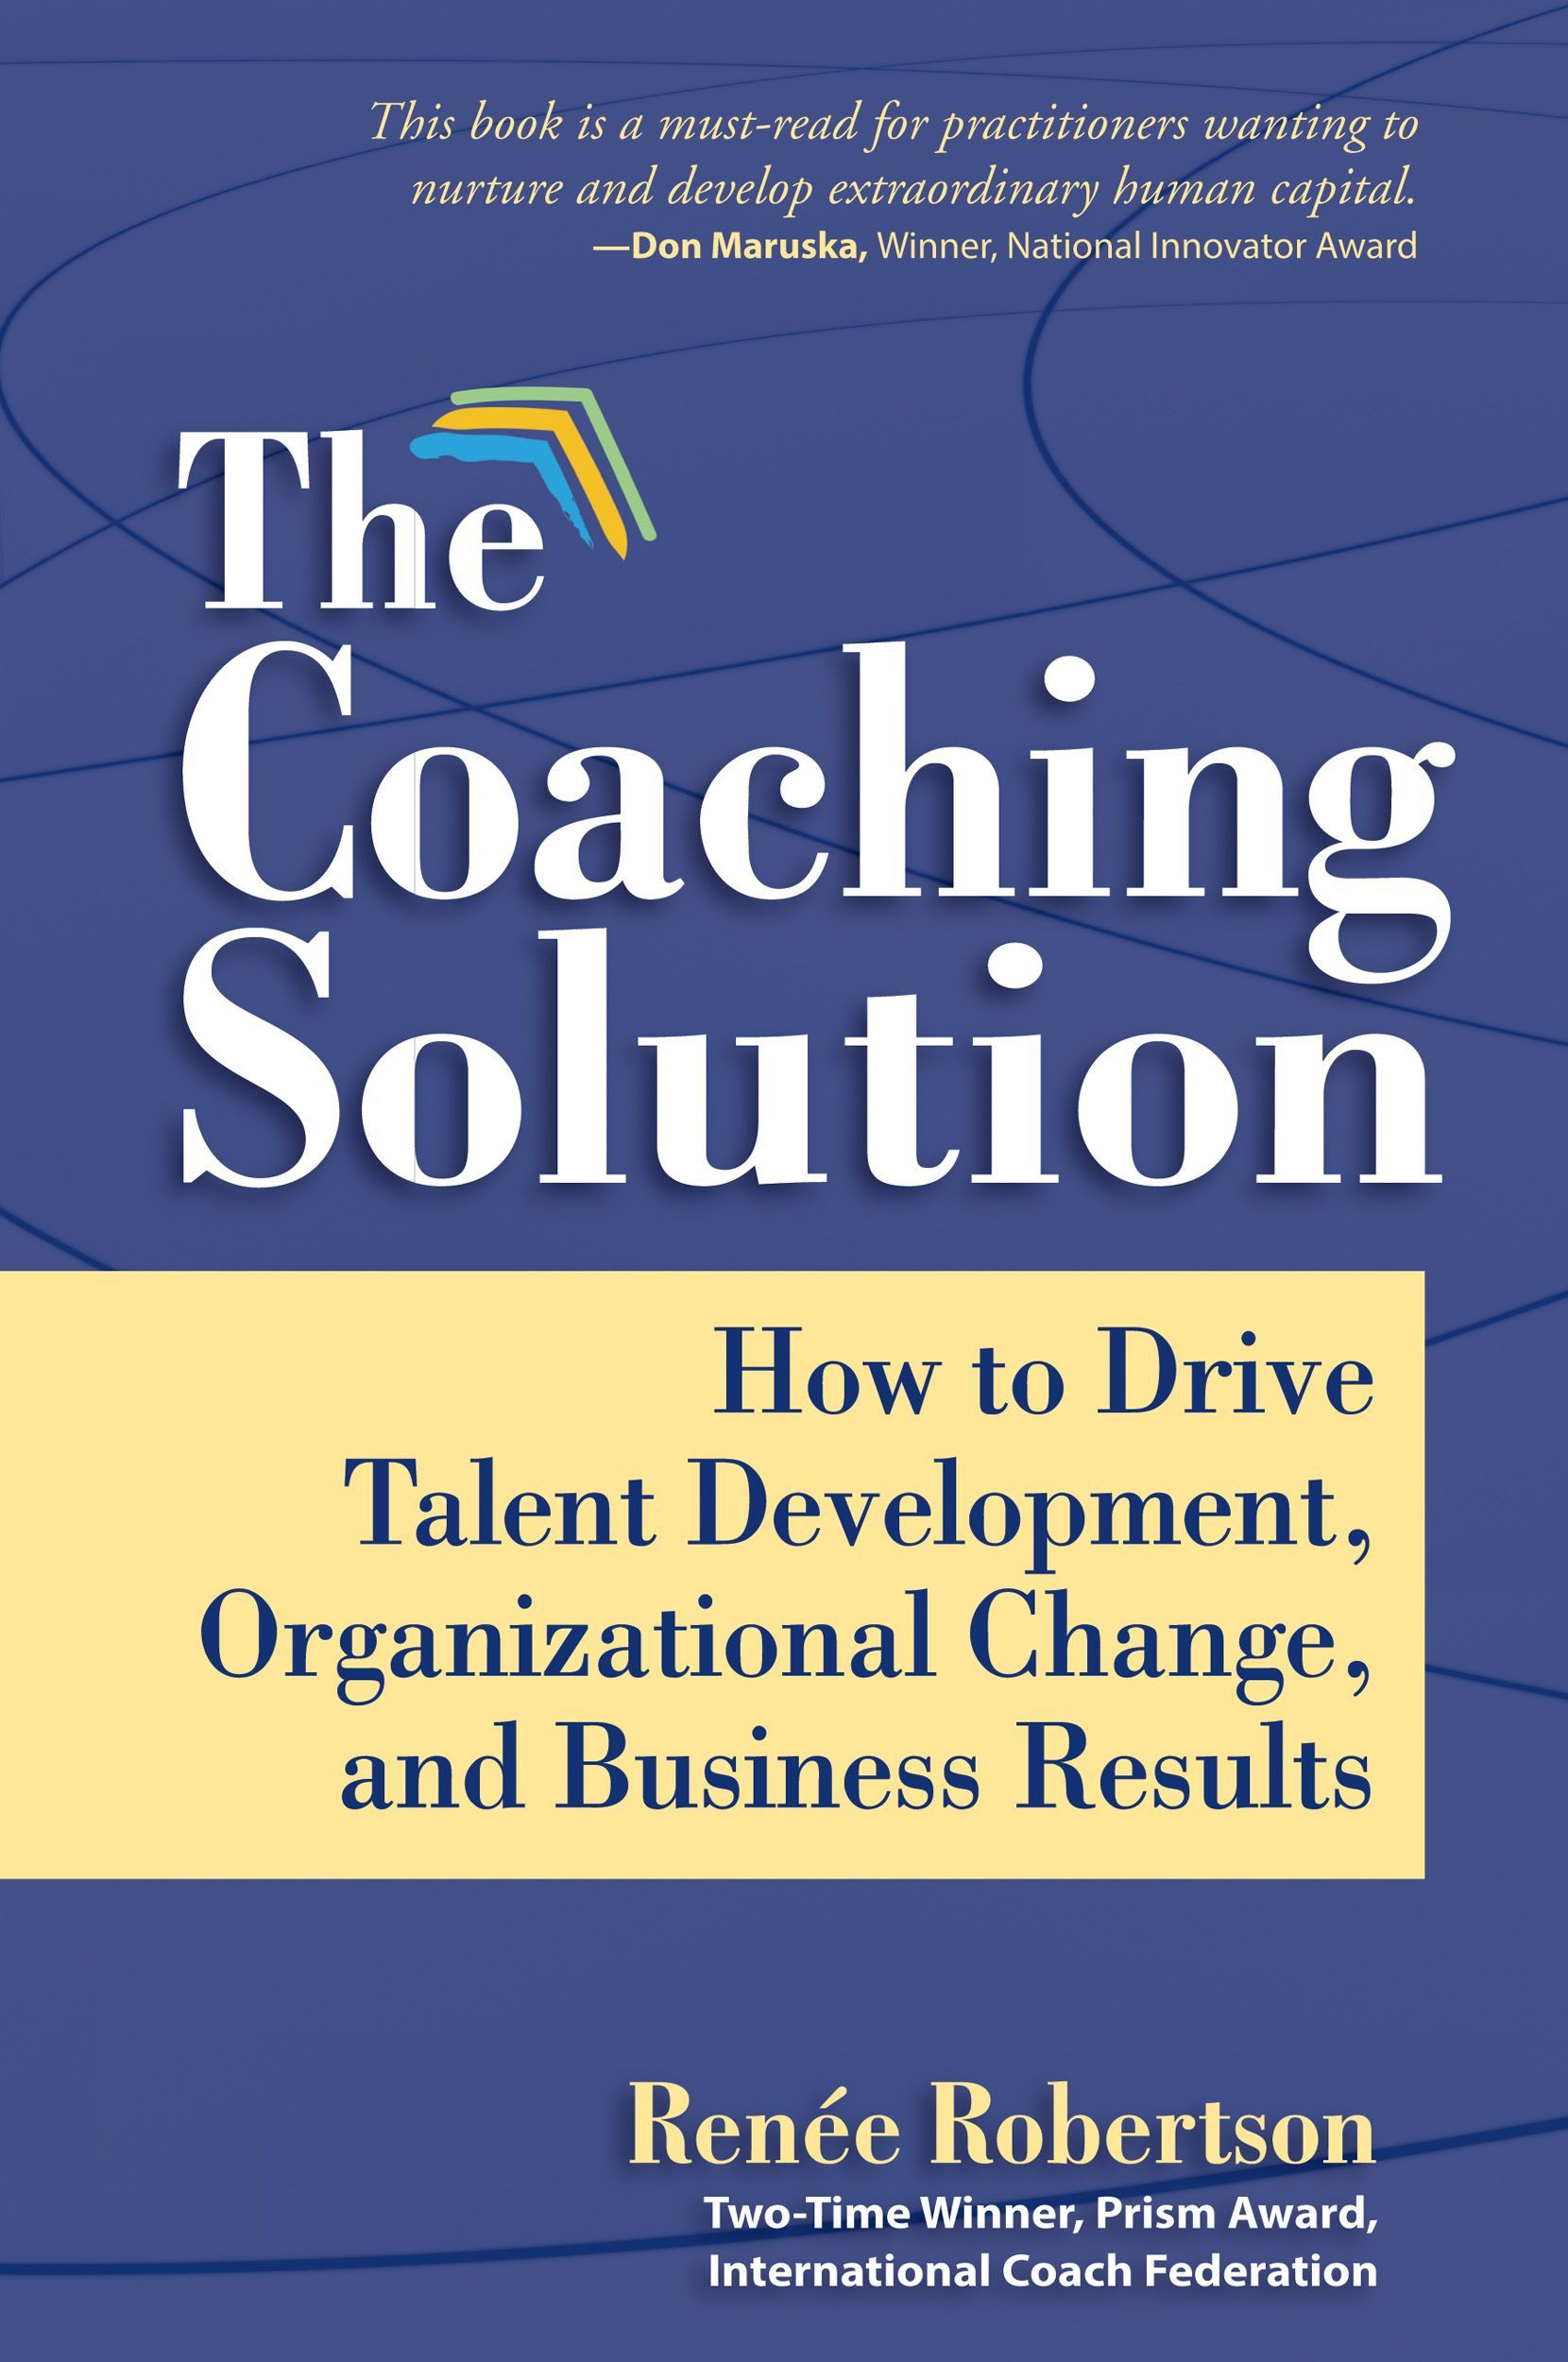 The Coaching Solution - Renee Robertson